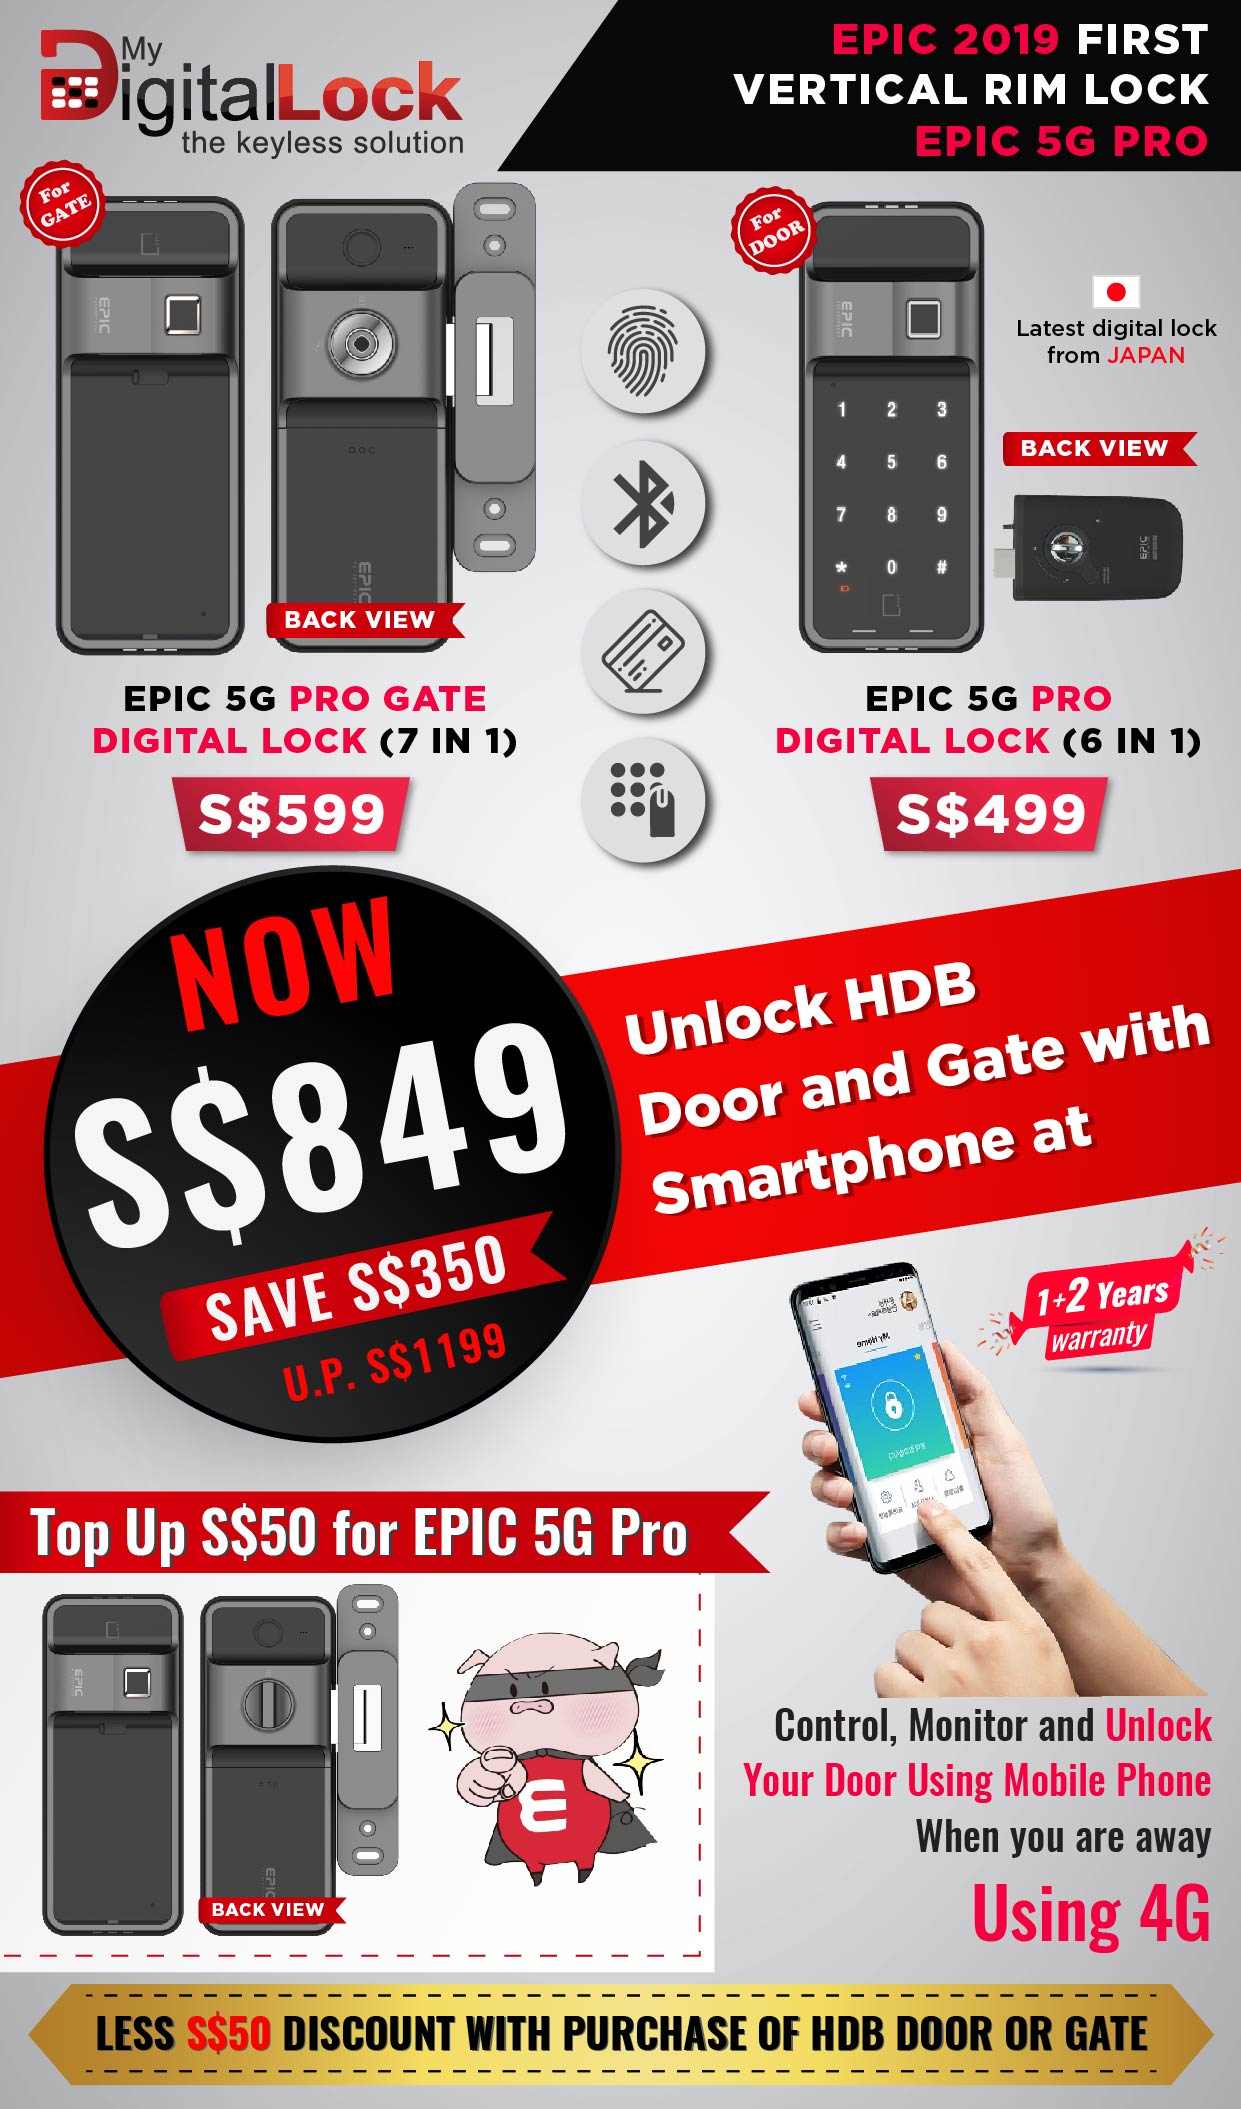 Buy EPIC 5G Pro Gate Digital Lock @ My Digital Lock. Call 9067 7990